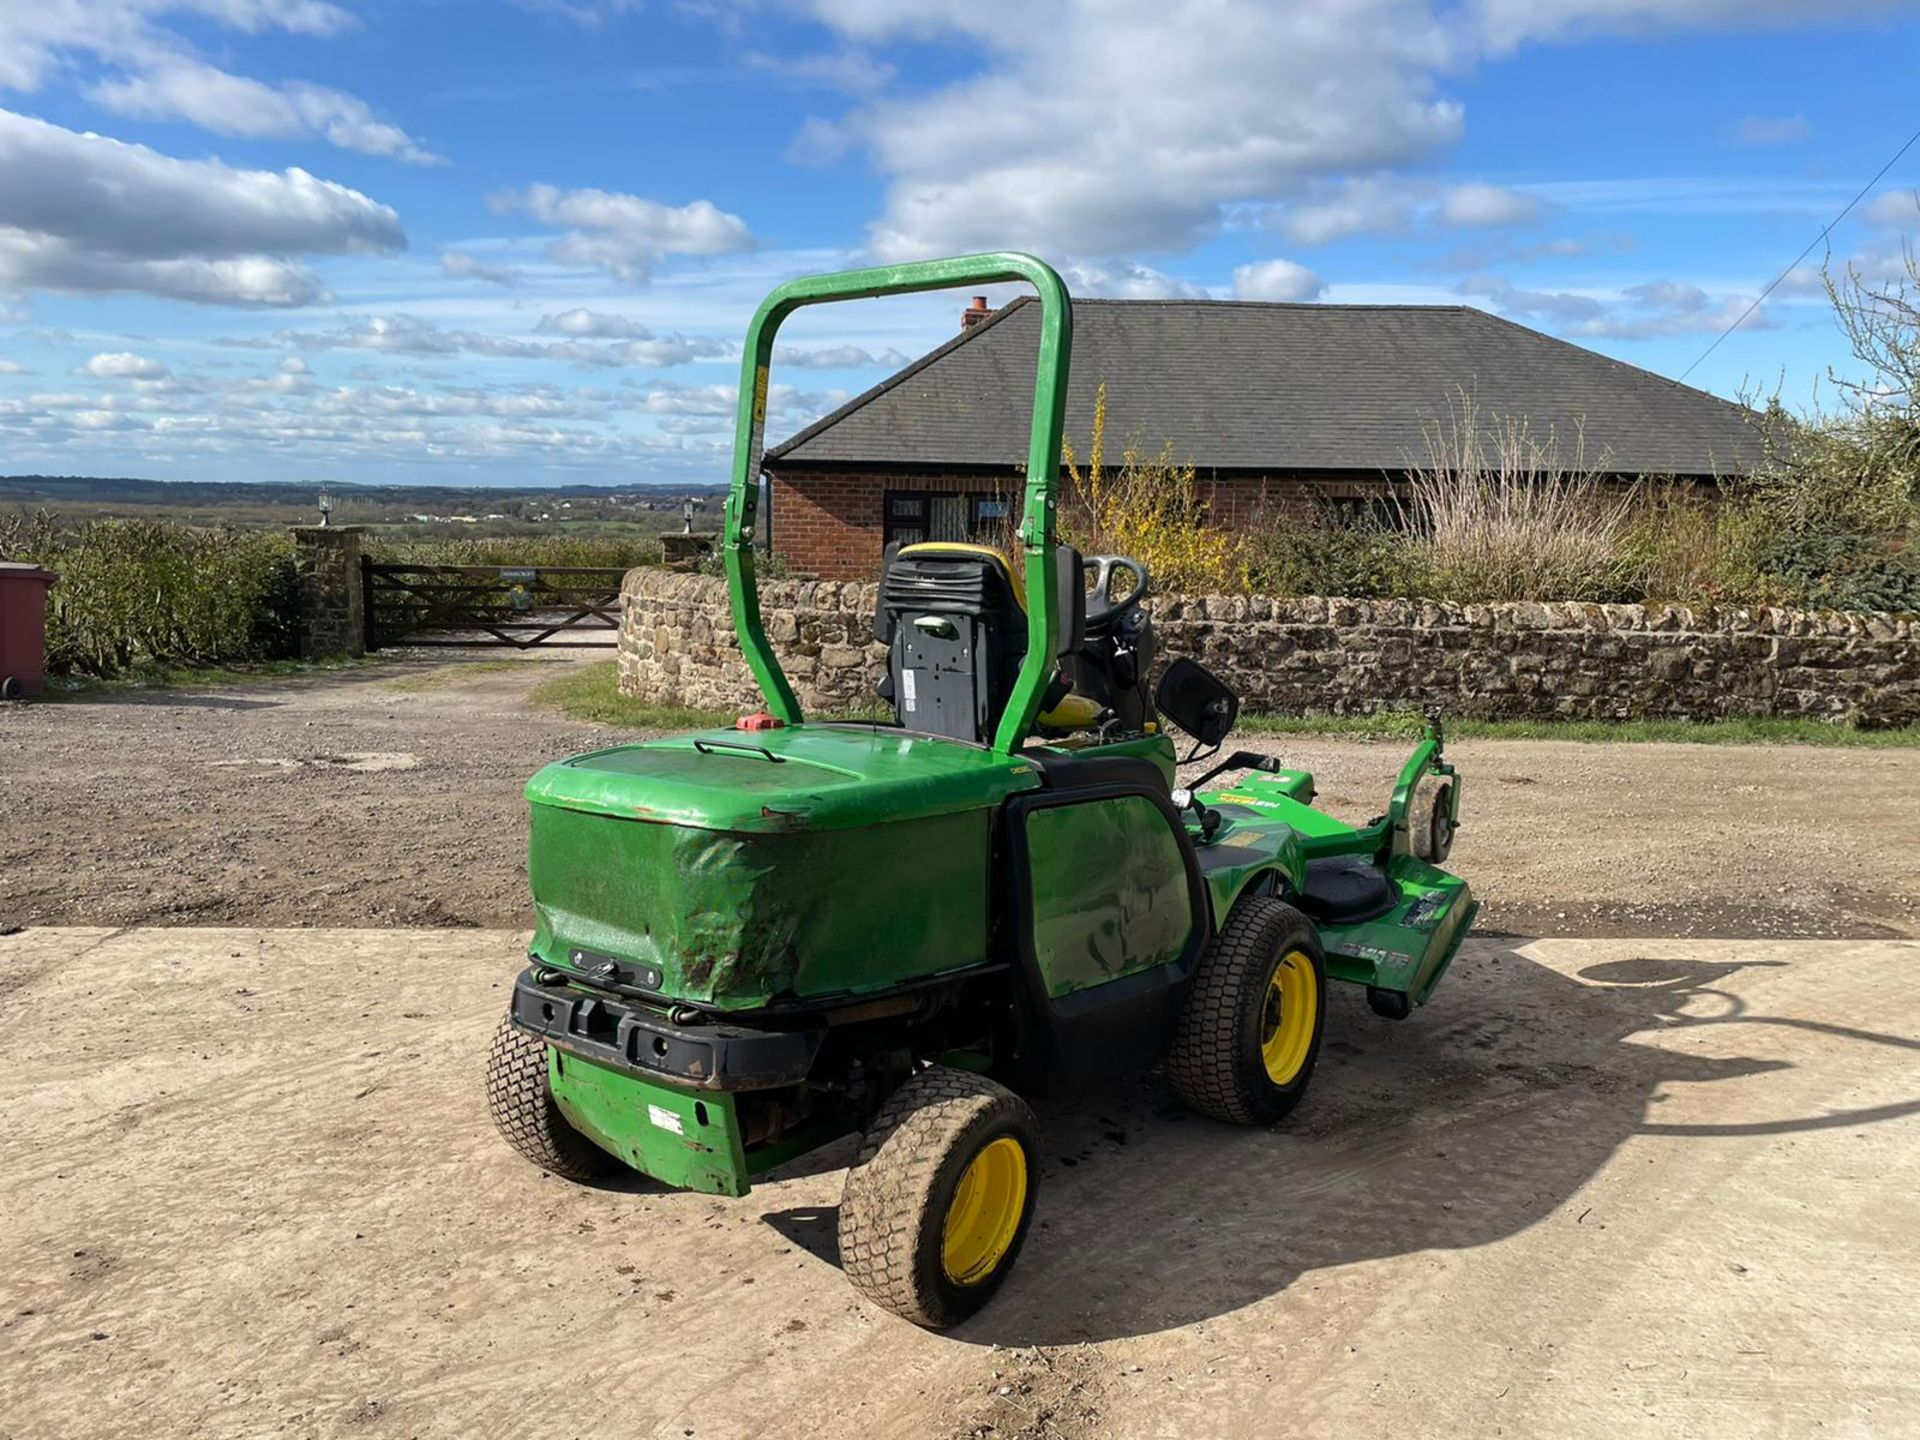 JOHN DEERE 1445 RIDE ON MOWER, RUNS DRIVES AND CUTS, IN USED BUT GOOD CONDITION *NO VAT* - Image 6 of 9